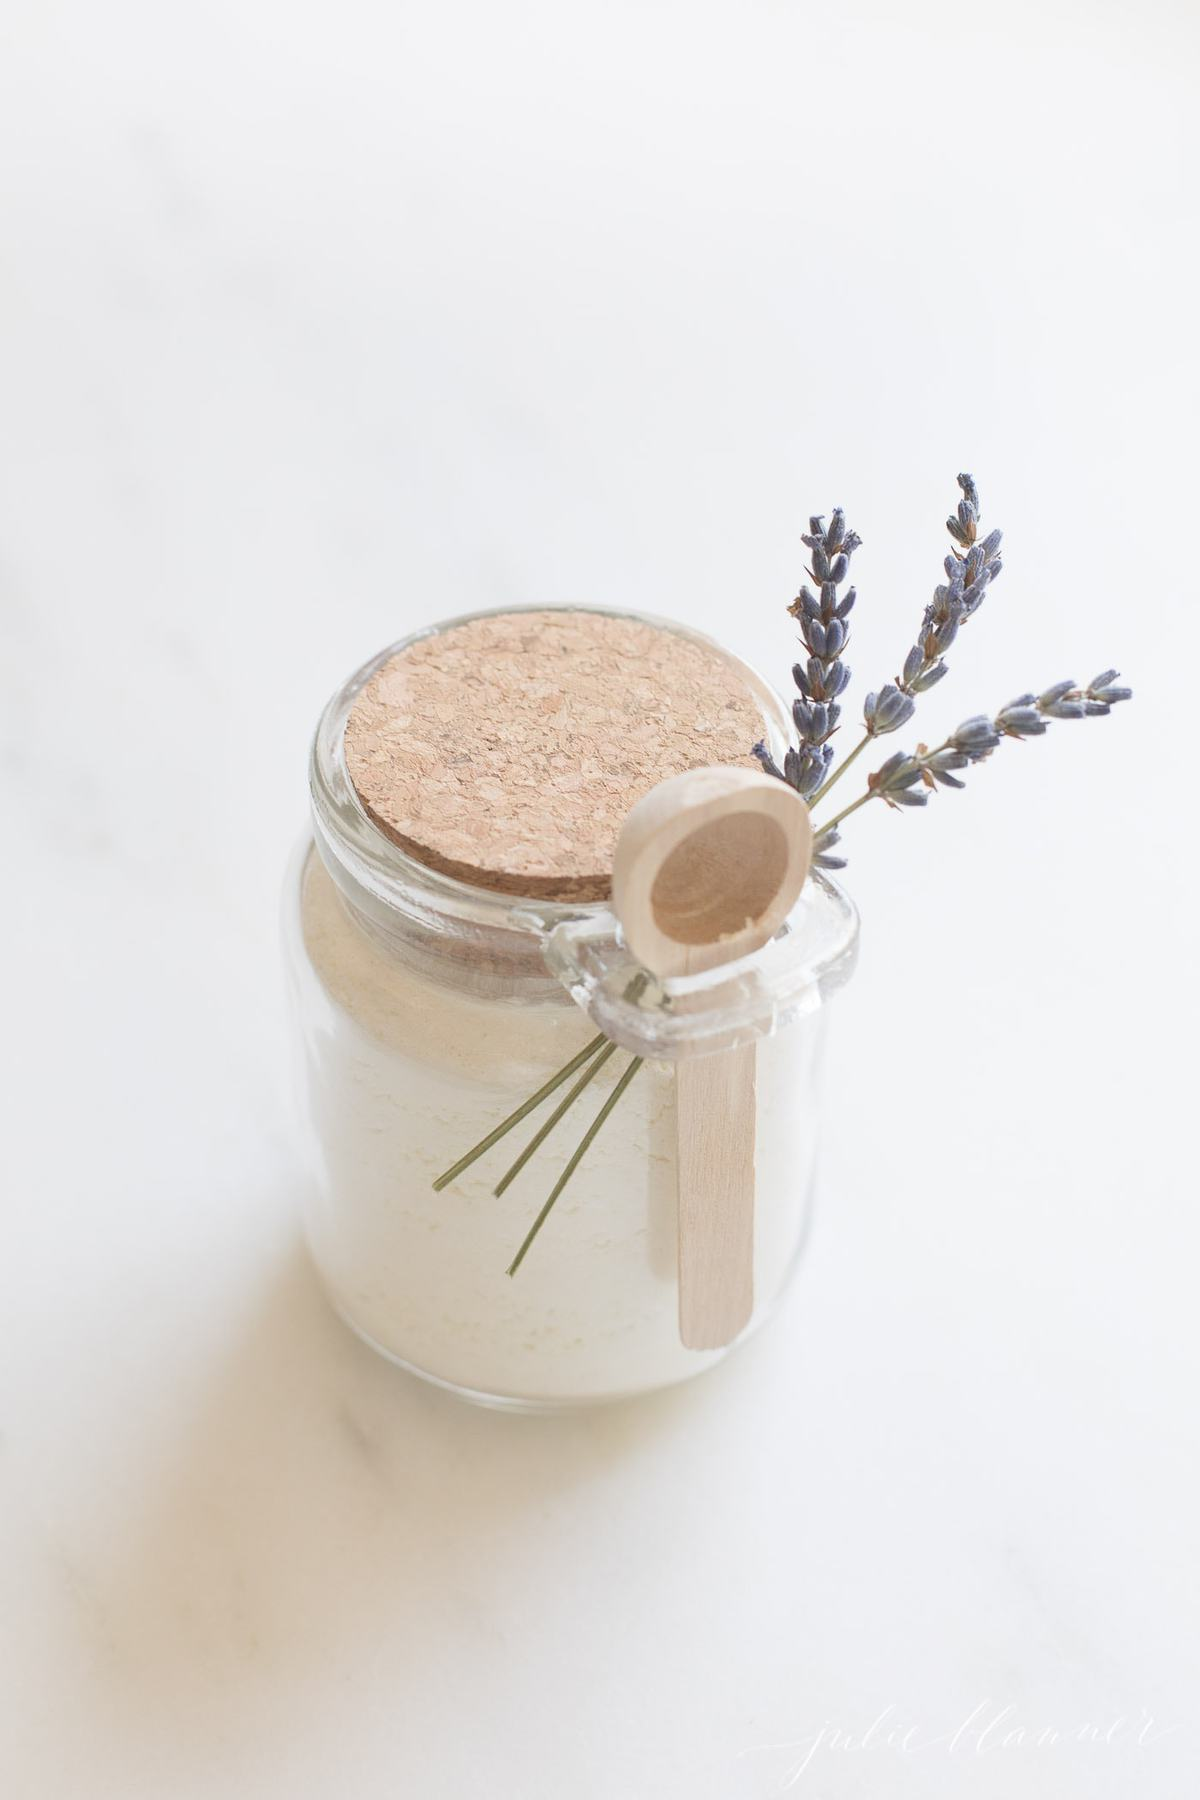 homemade gift in jar garnished with lavender